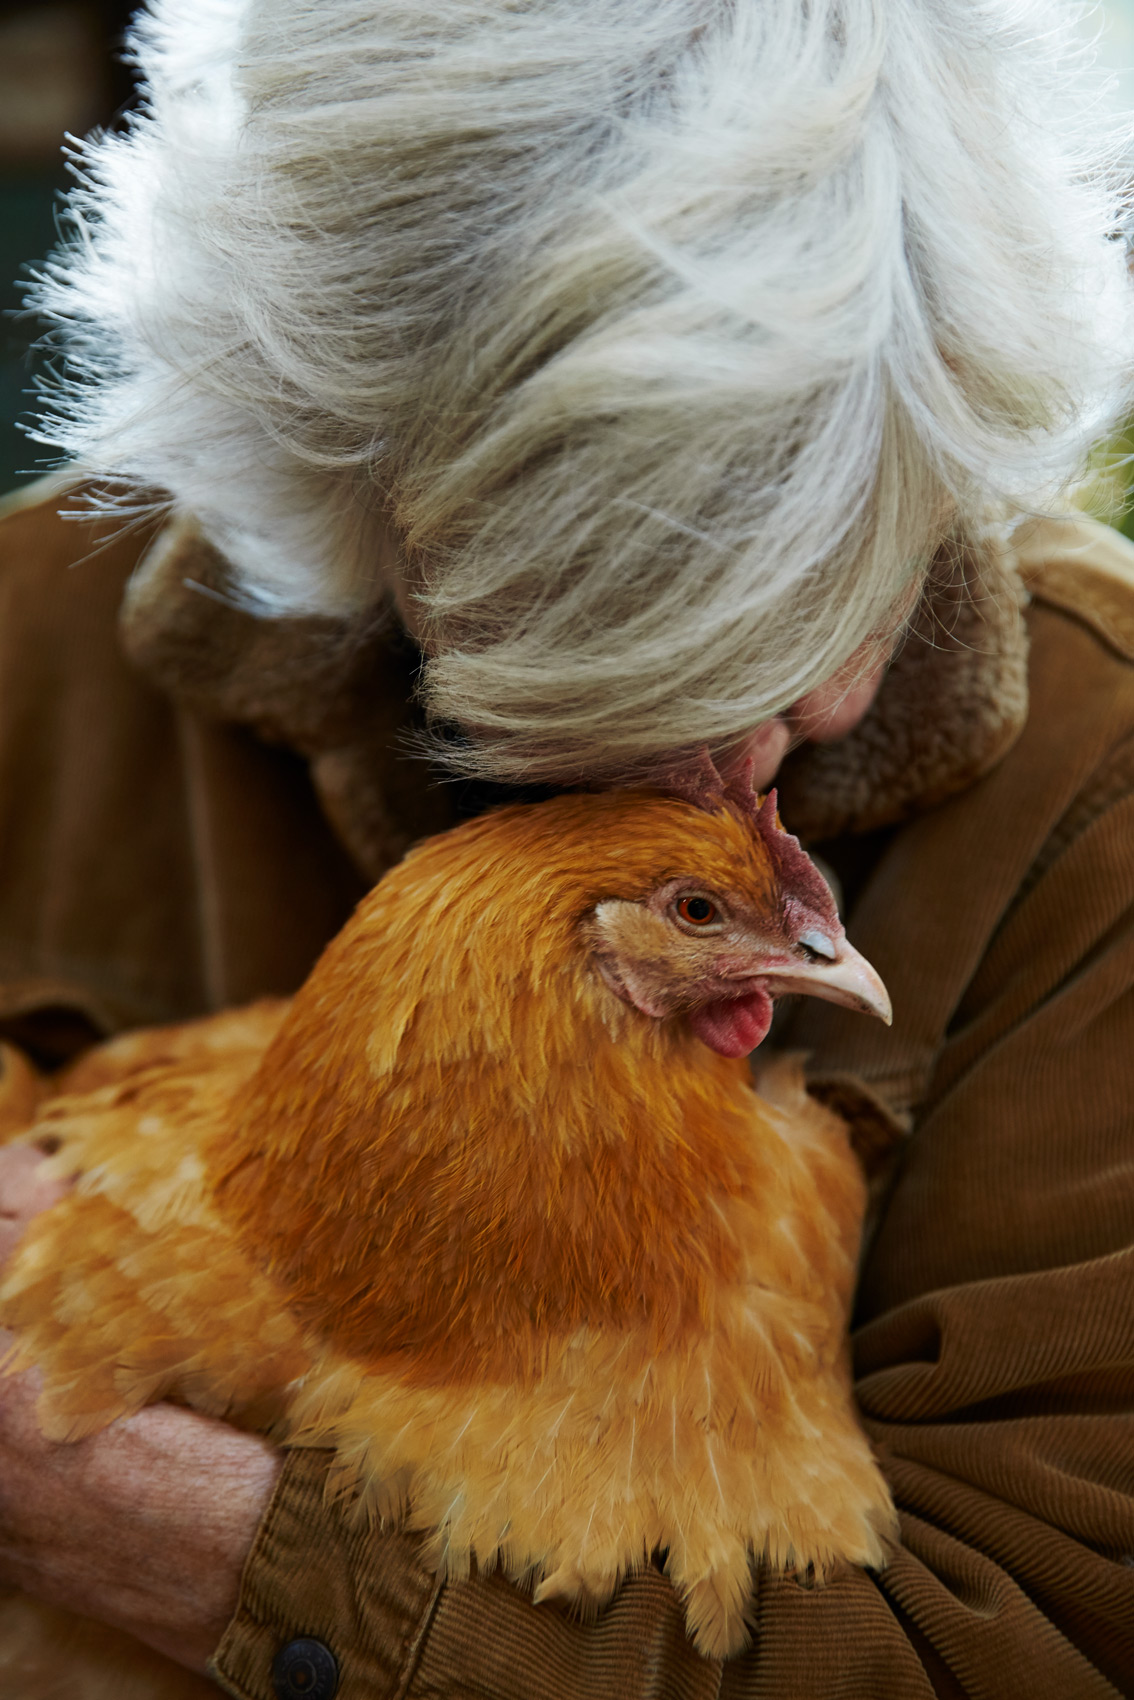 Lifestyle: The Chicken Whisperer